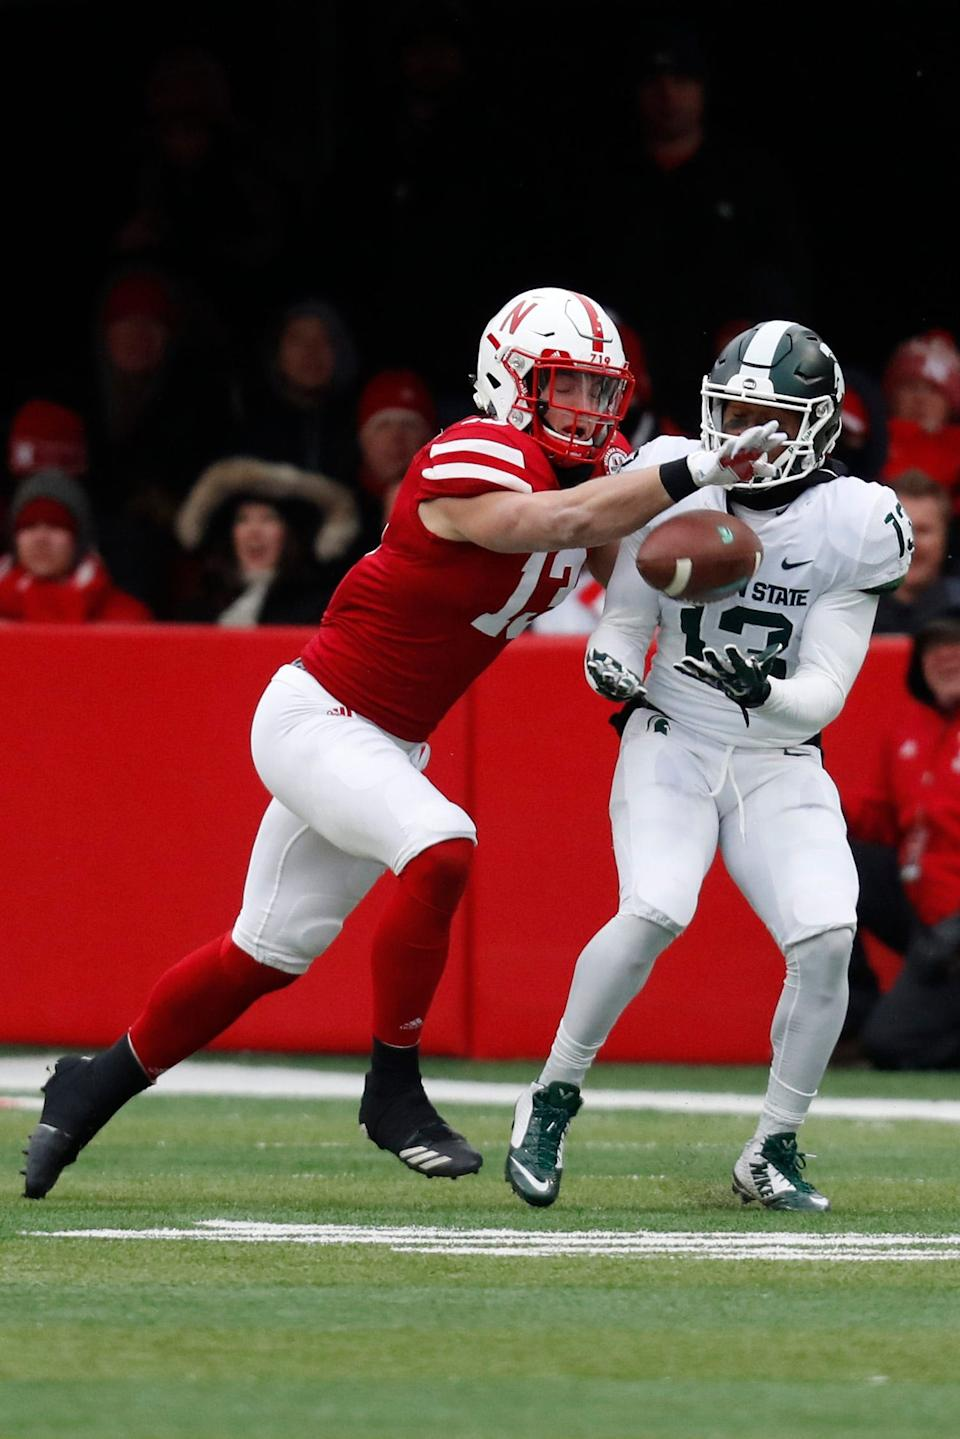 Nov 17, 2018; Lincoln, NE, USA; Michigan State Spartans wide receiver Mickey Macius (13) catches the pass against Nebraska Cornhuskers safety JoJo Domann (13) in the first half at Memorial Stadium. Mandatory Credit: Bruce Thorson-USA TODAY Sports